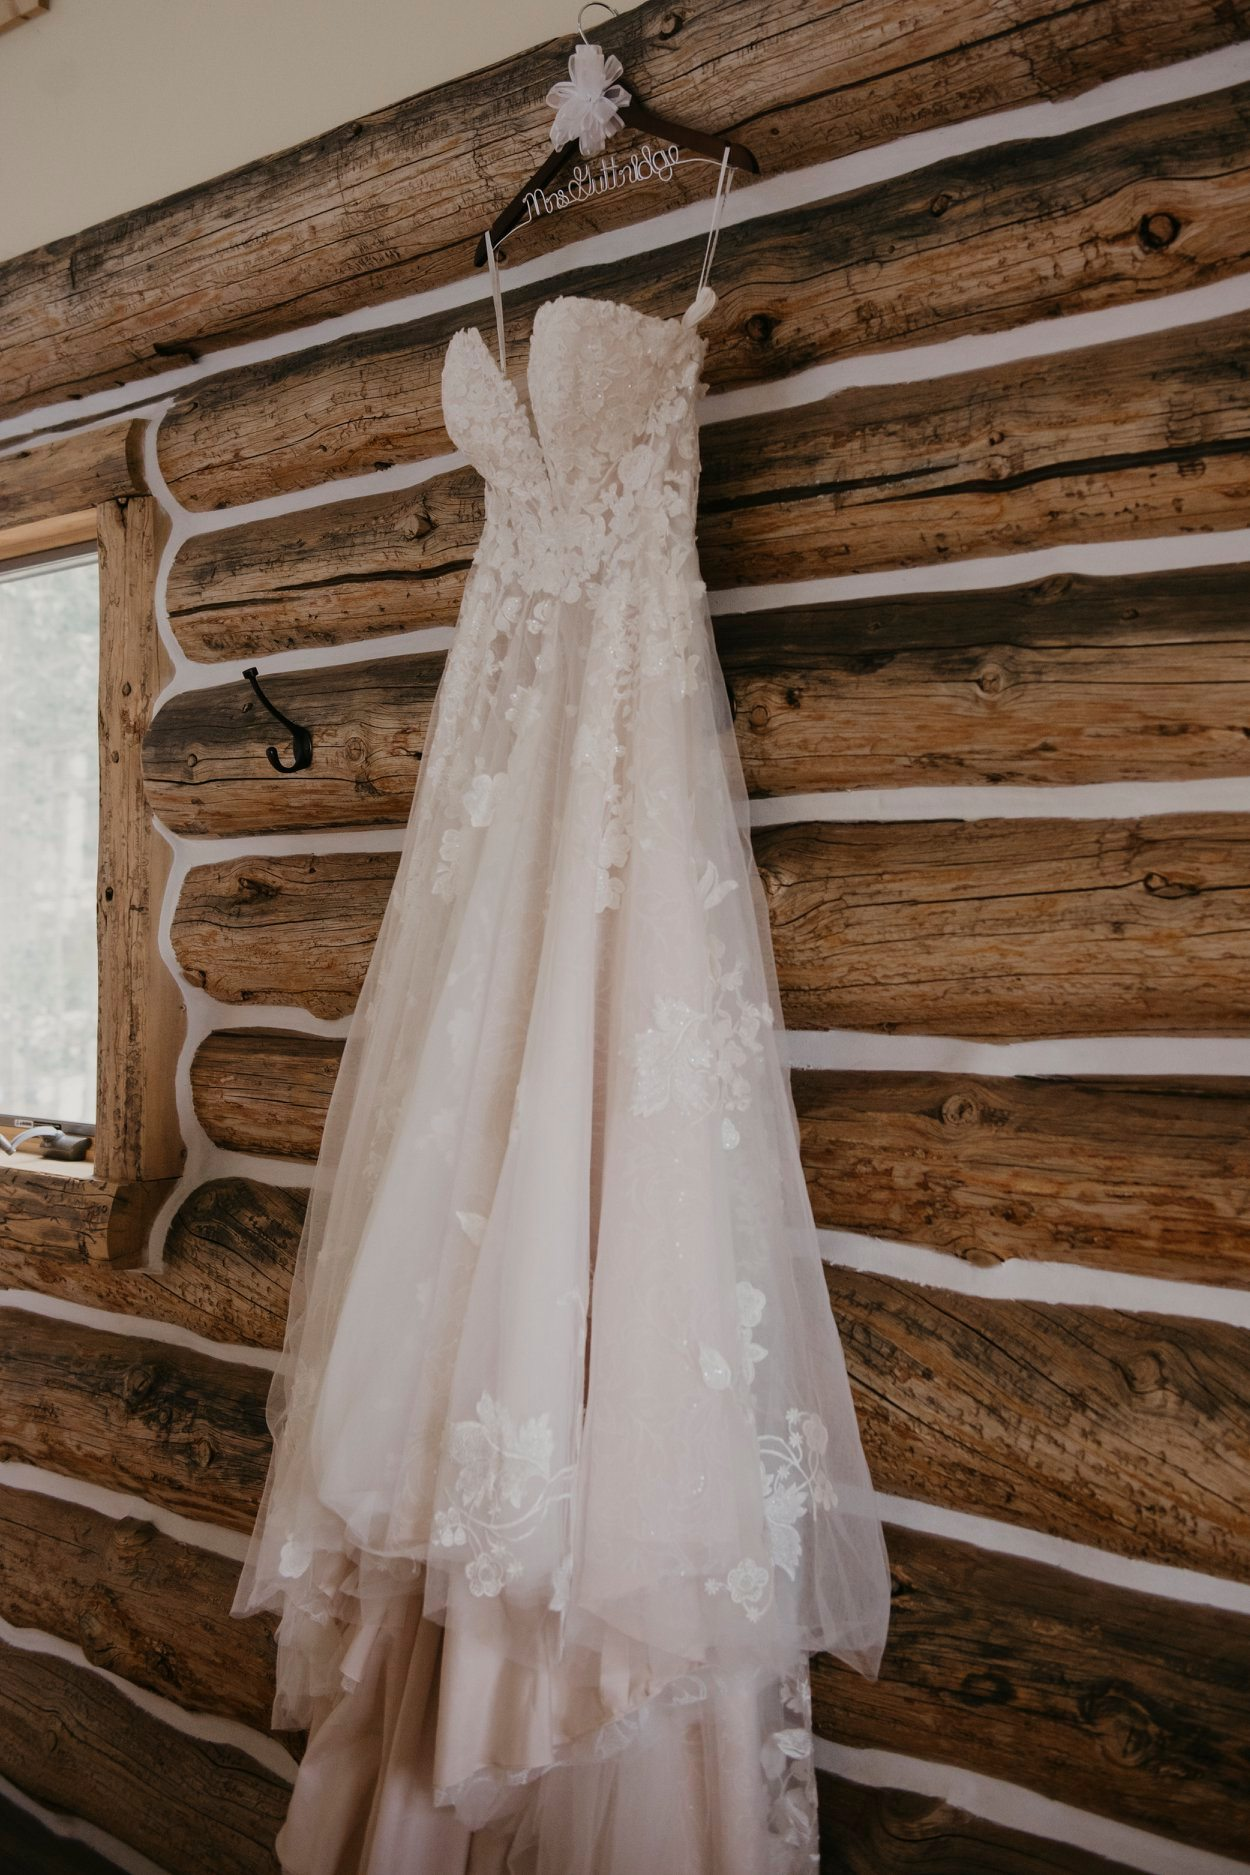 Bri's Bridal Boutique   Wedding gown boutique in Durango, Colorado featured on WED West Slope - a directory for wedding vendors.